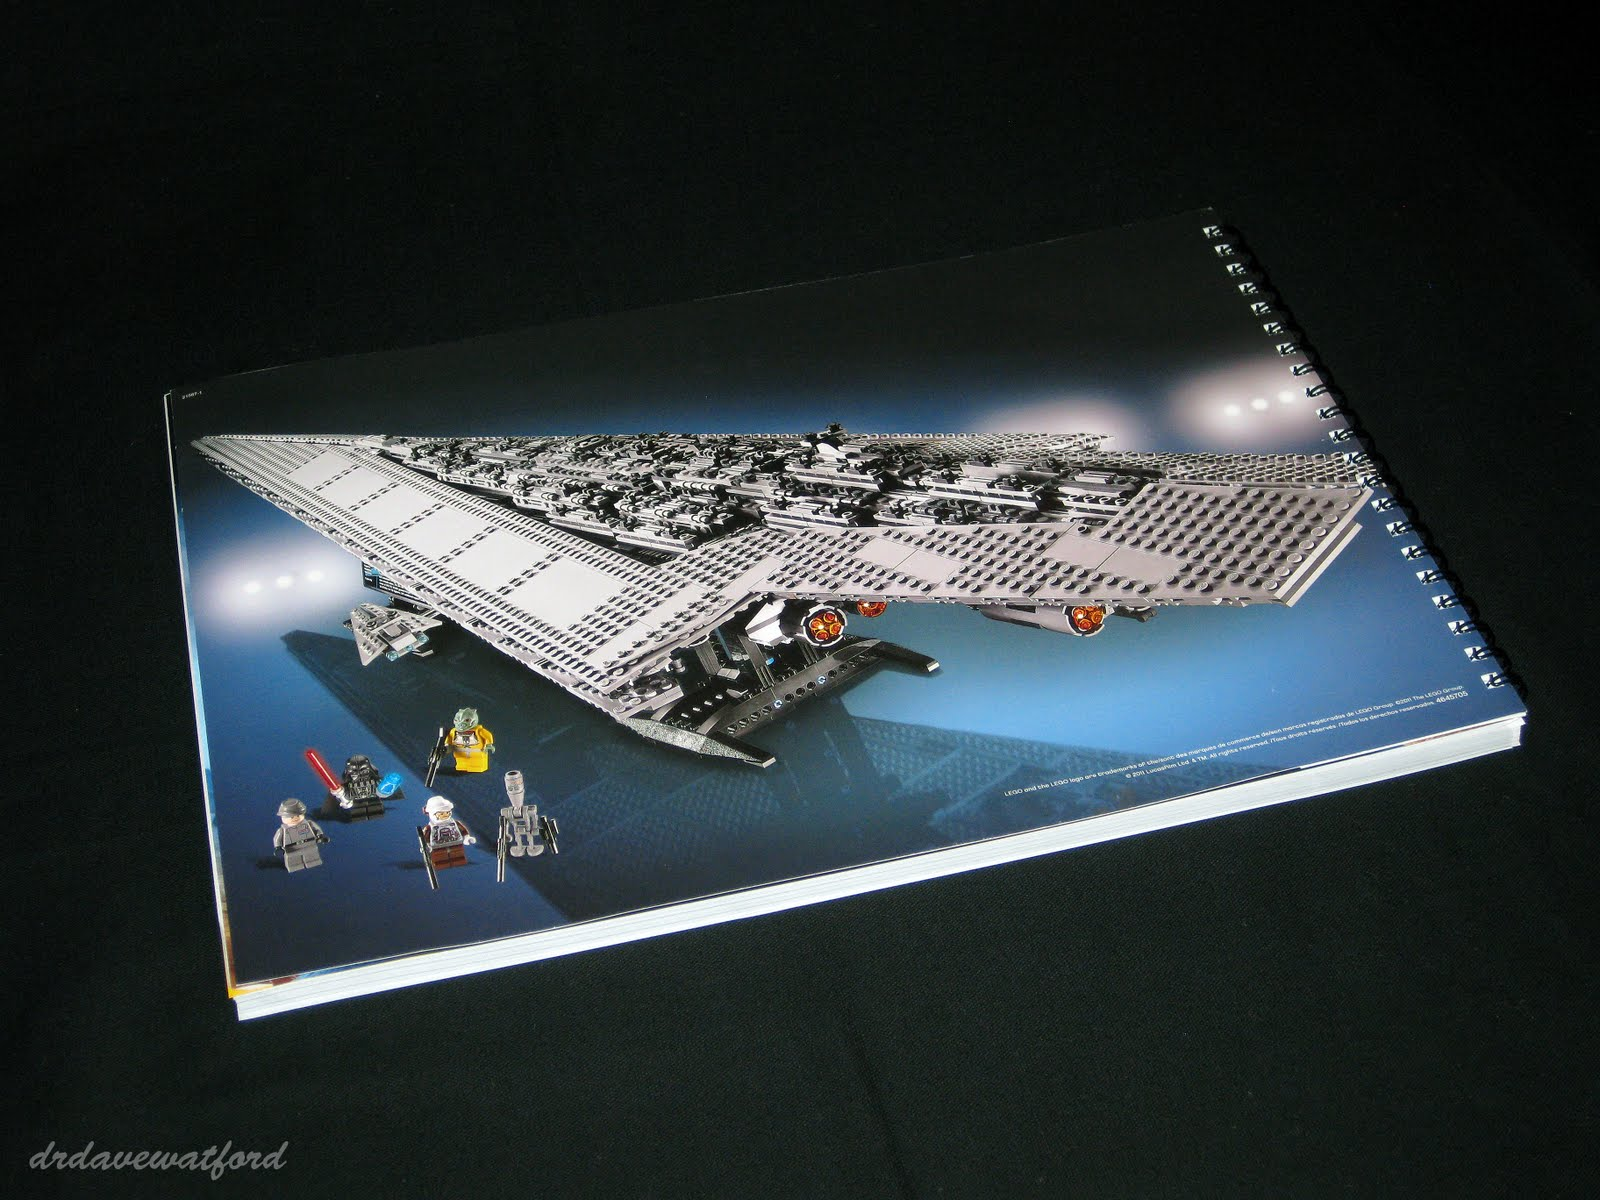 lego star destroyer - photo #21